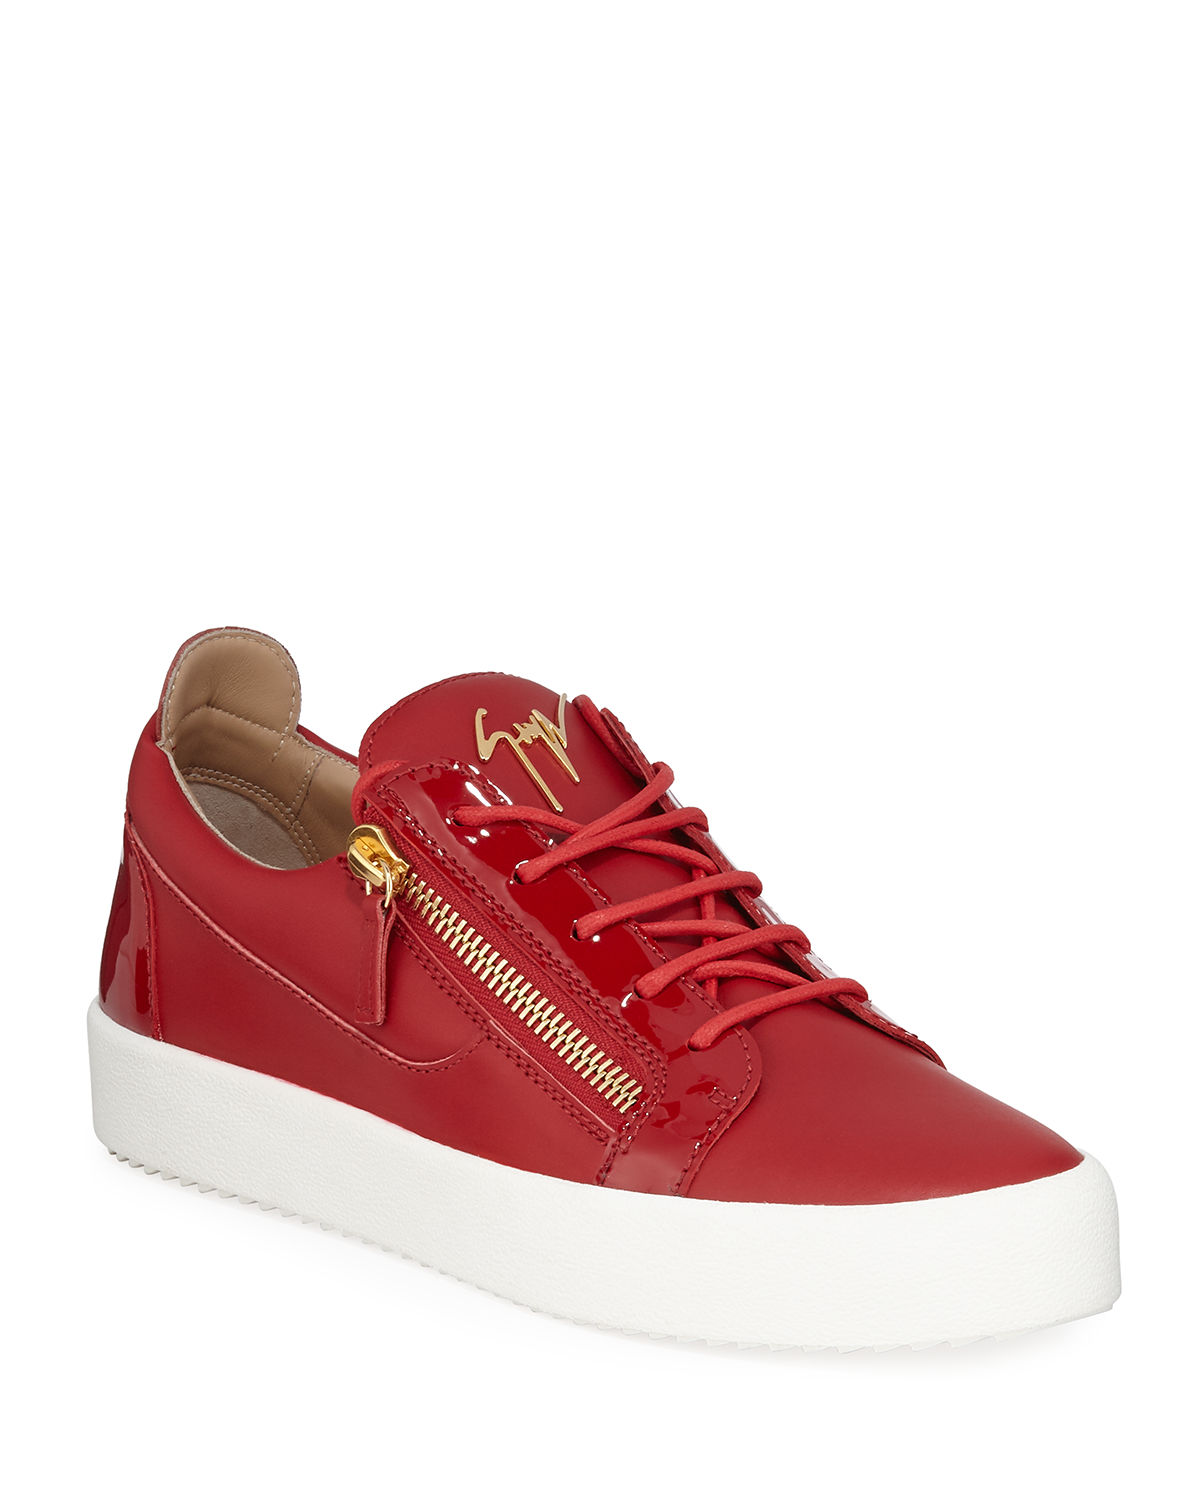 ca8f18ef5b3c55 Giuseppe Zanotti Men s London Double-Zip Leather Low-Top Sneakers ...